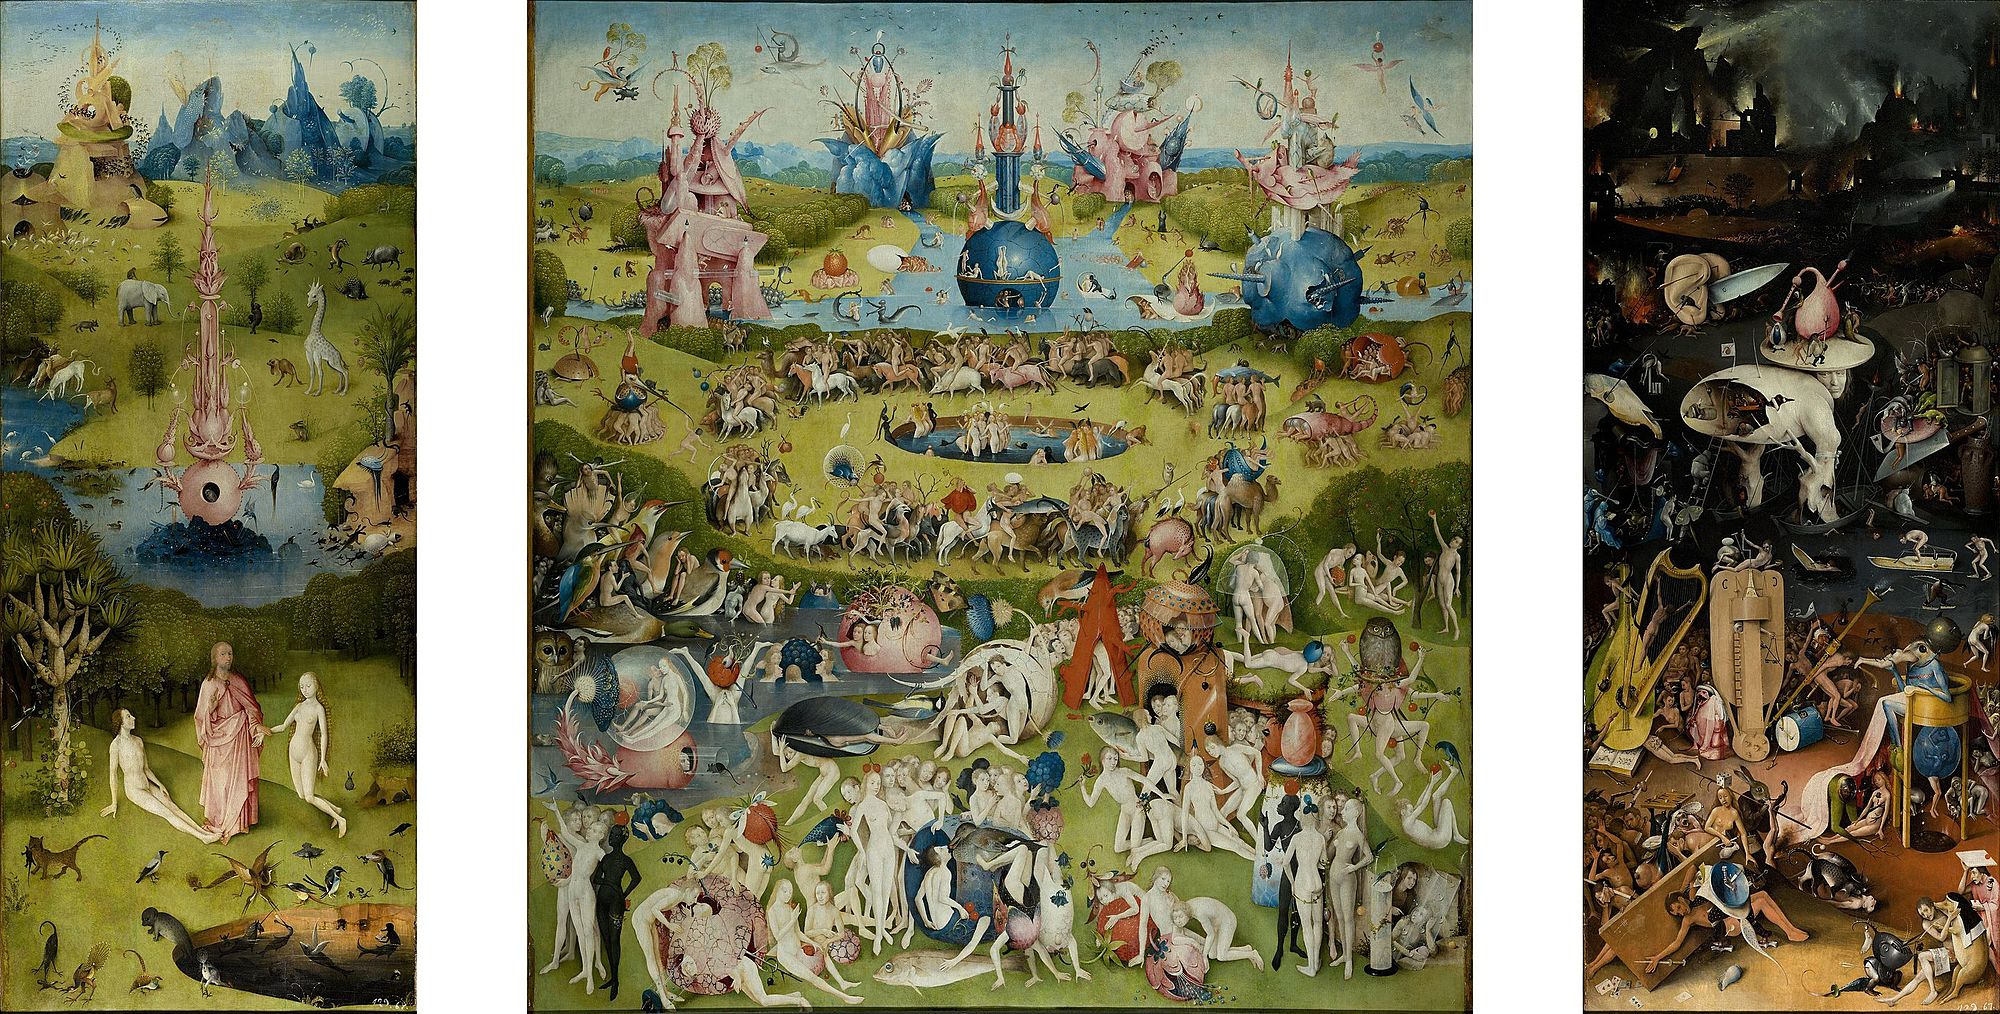 The Garden of Earthly Delights [Hieronymus Bosch]